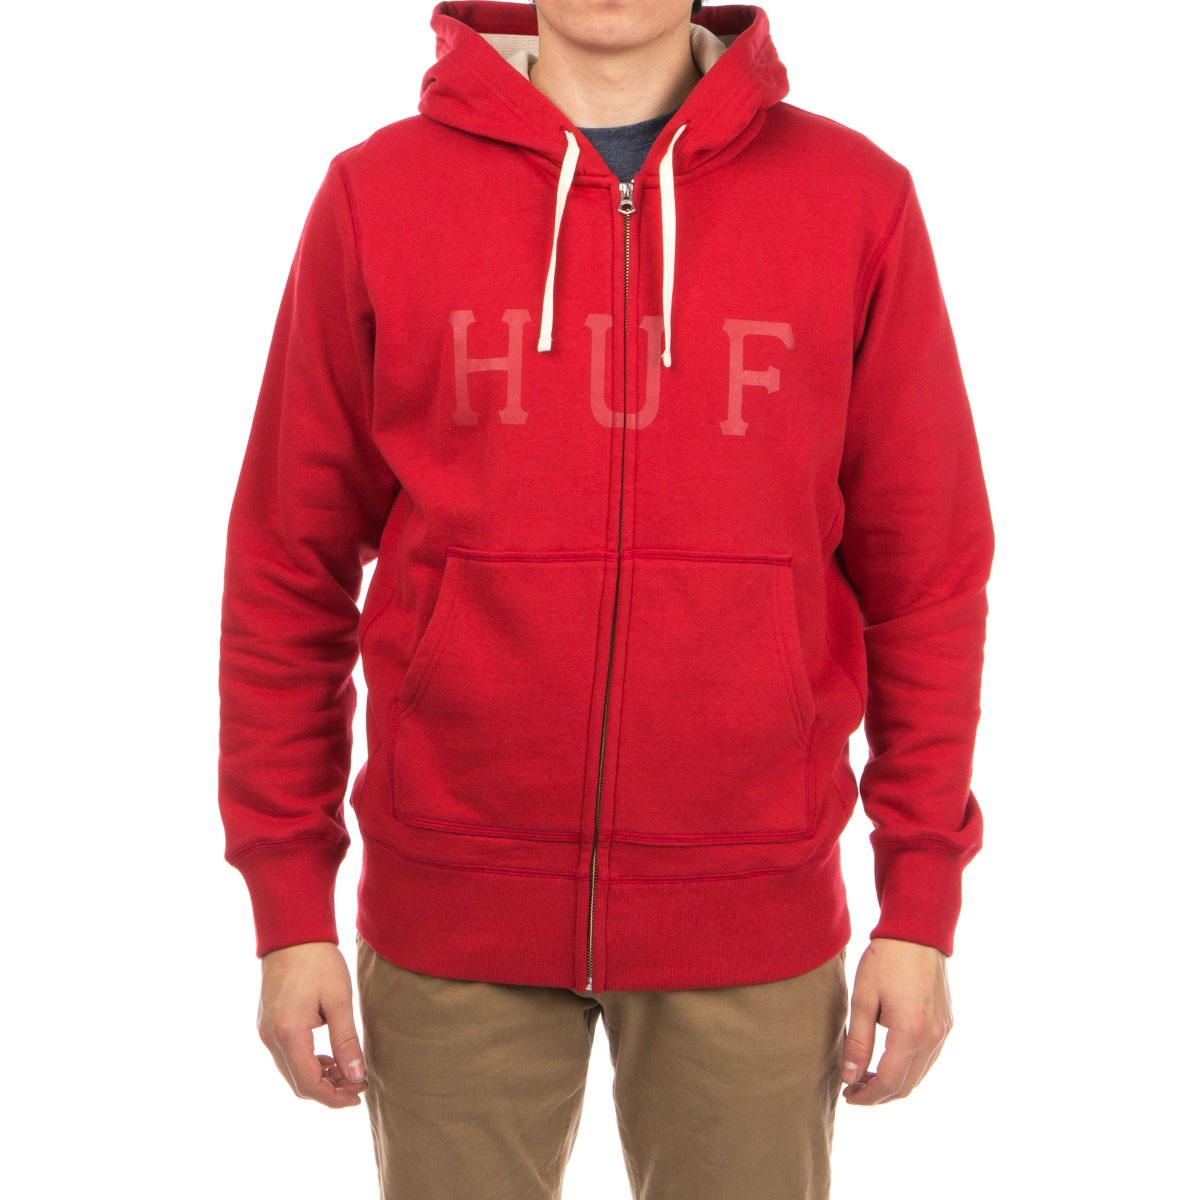 huf-brooks-thermal-zip-up-hoodie-red-1.1506664390.jpg e46786bec68